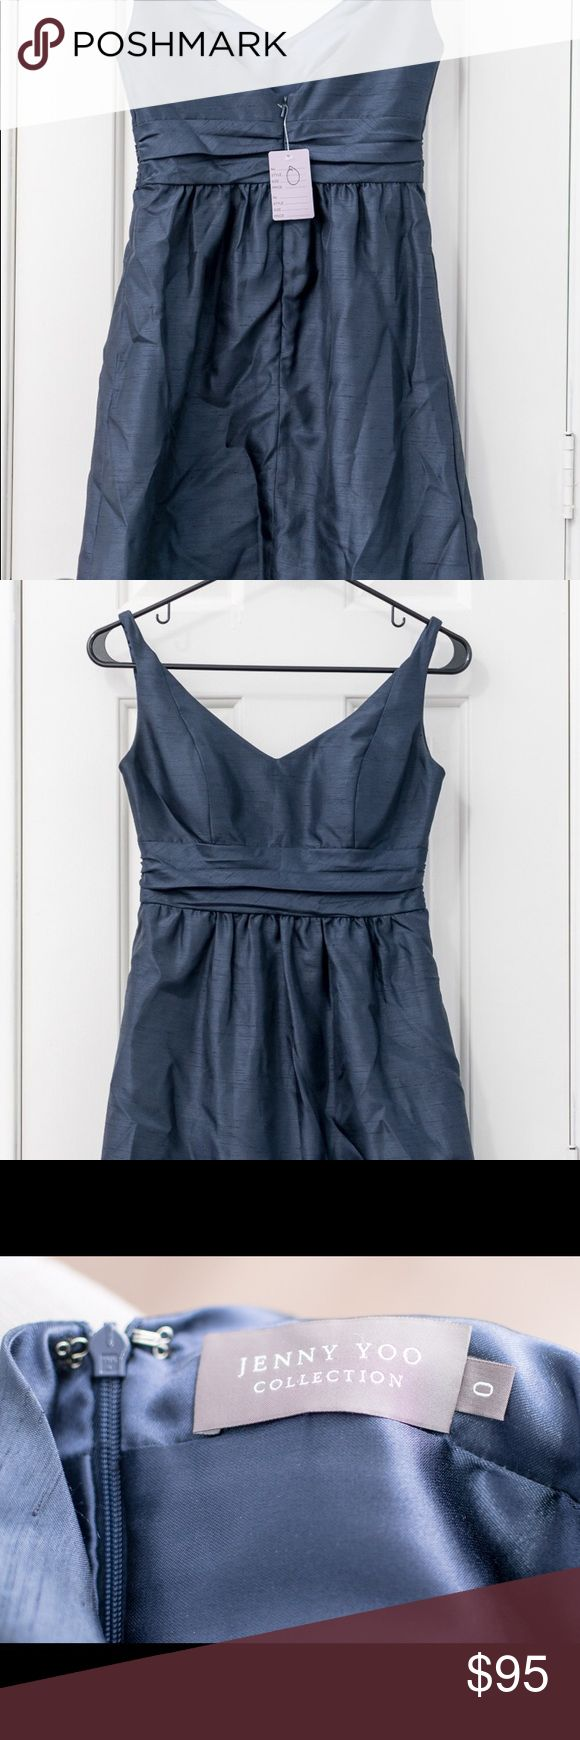 [Jenny Yoo] Navy Bridesmaid Dress Size 0 This is from a sample sale, so the only tags are from the sale, not from the manufacturer. This dress hits right above the knee. Zips and clips in back. Dark navy color. Jenny Yoo Dresses Wedding